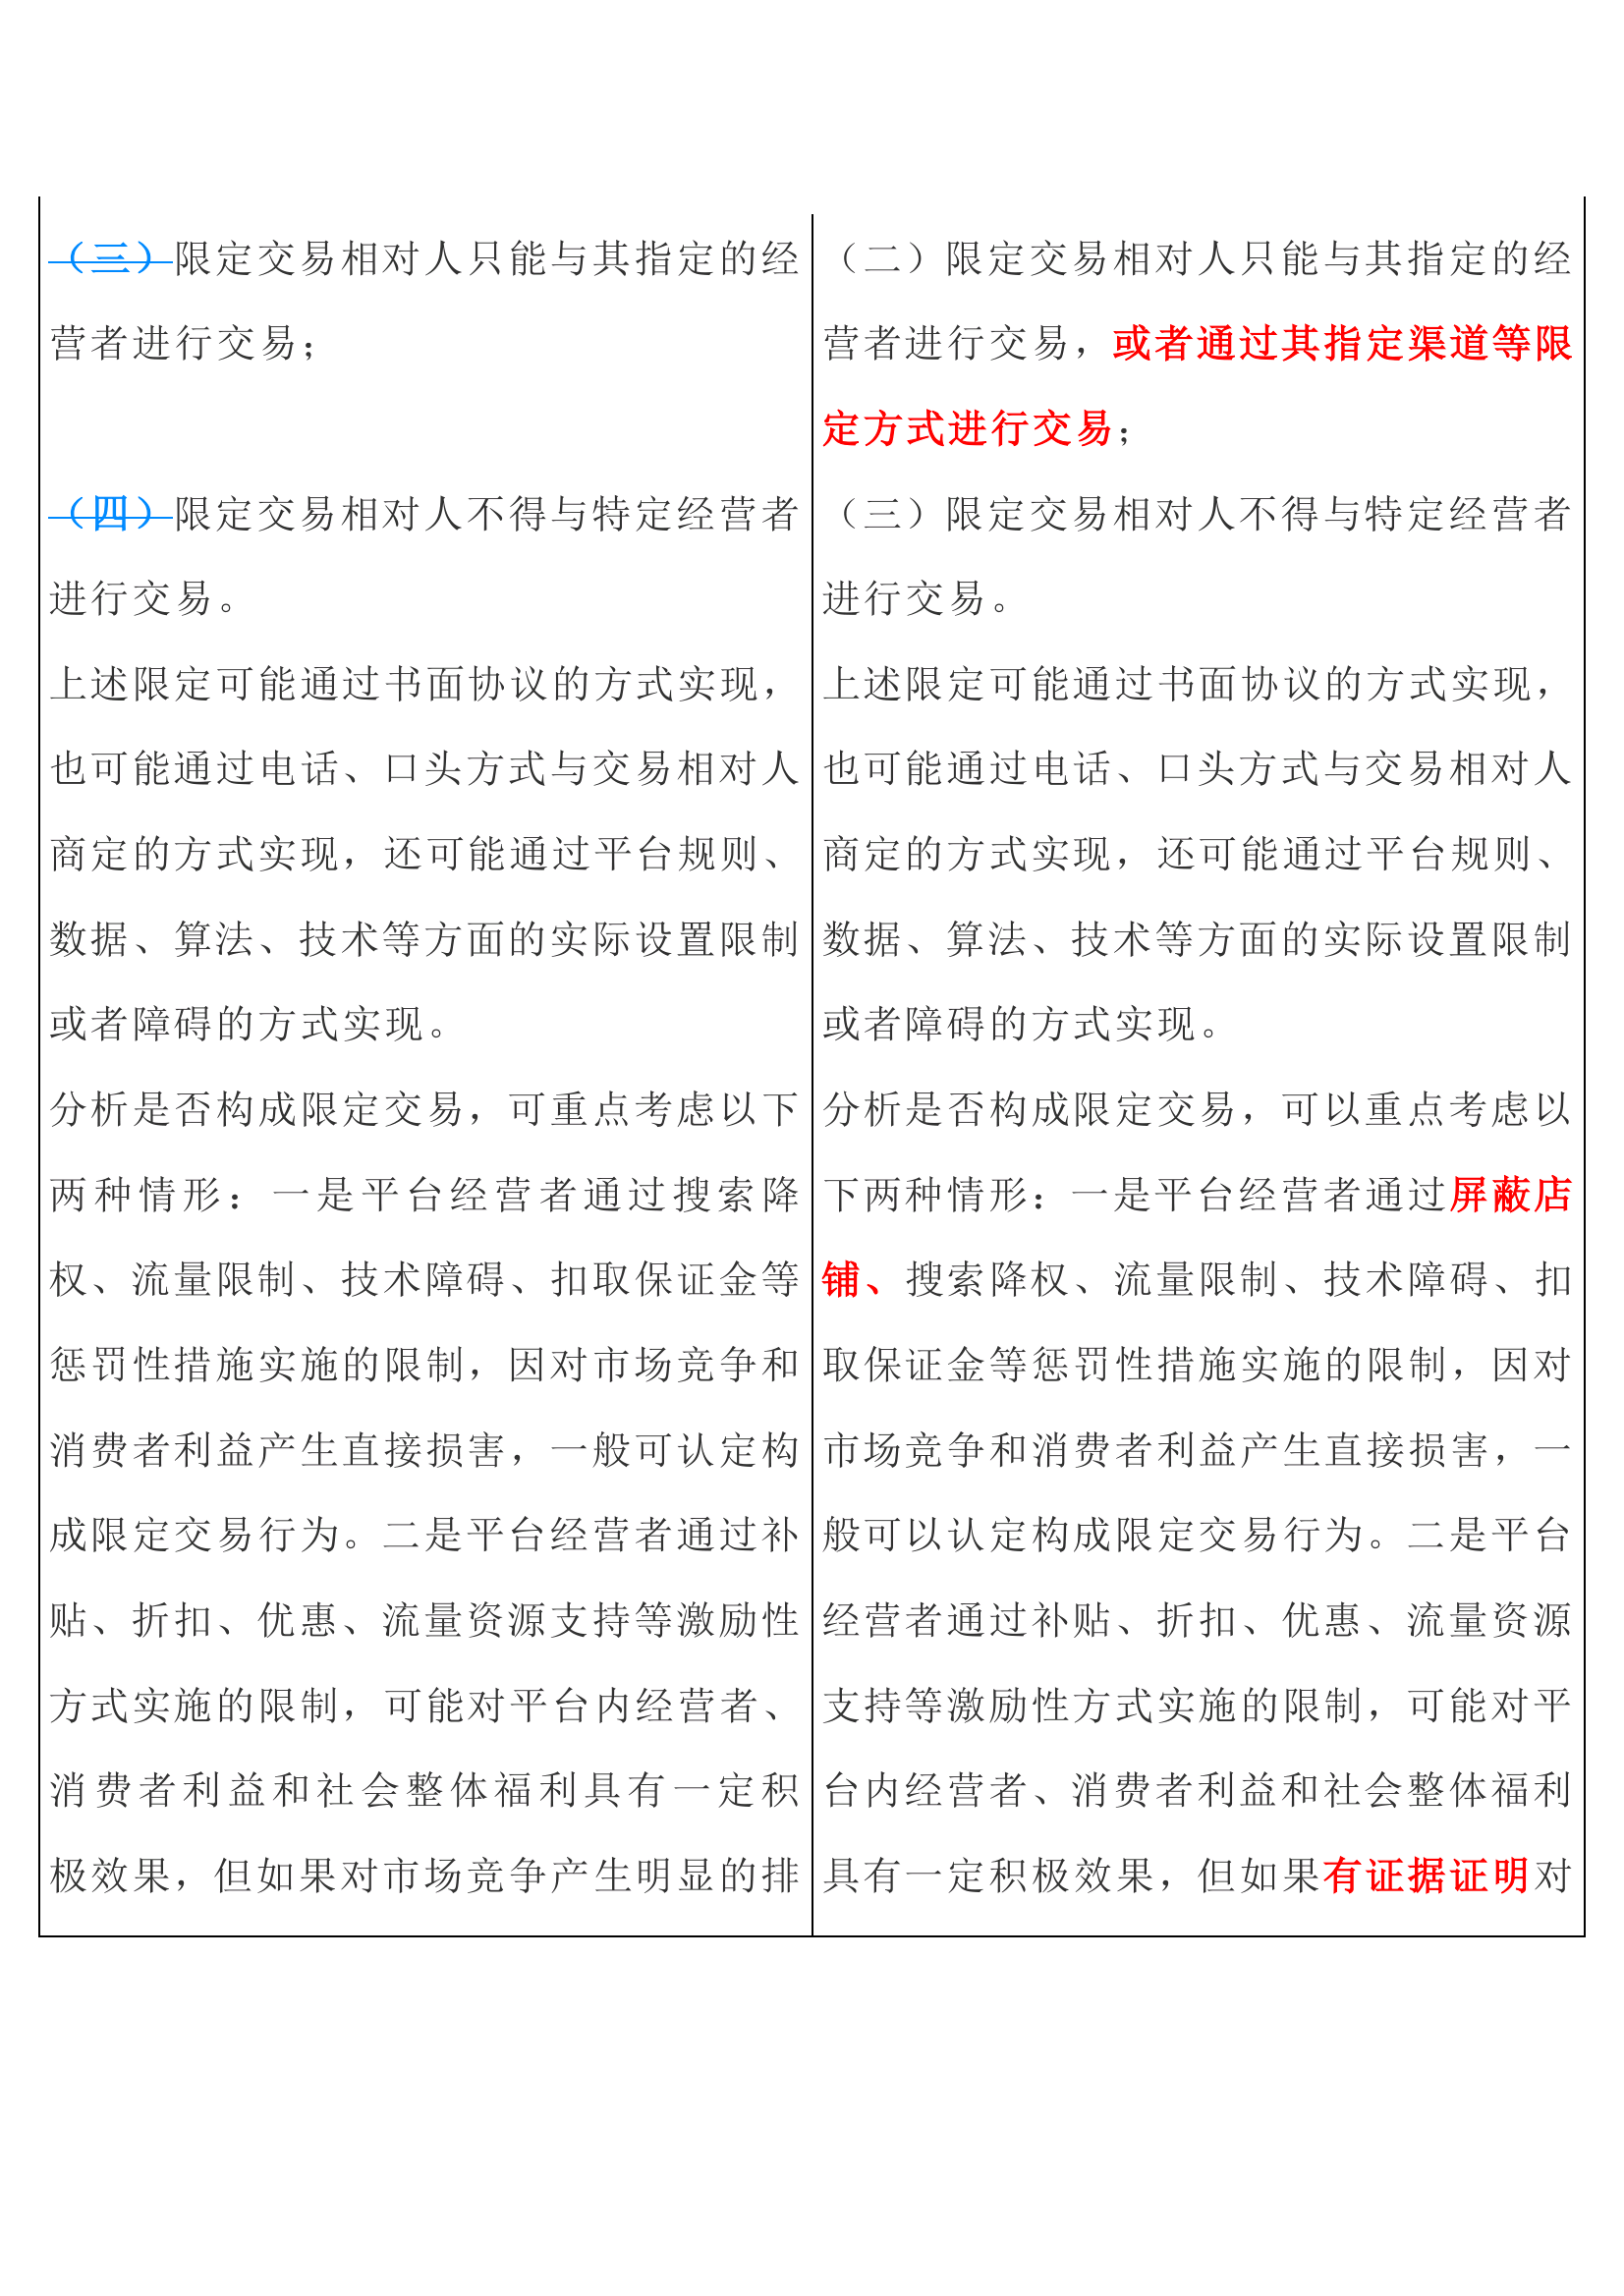 share_pdf_exportpage20(2).png